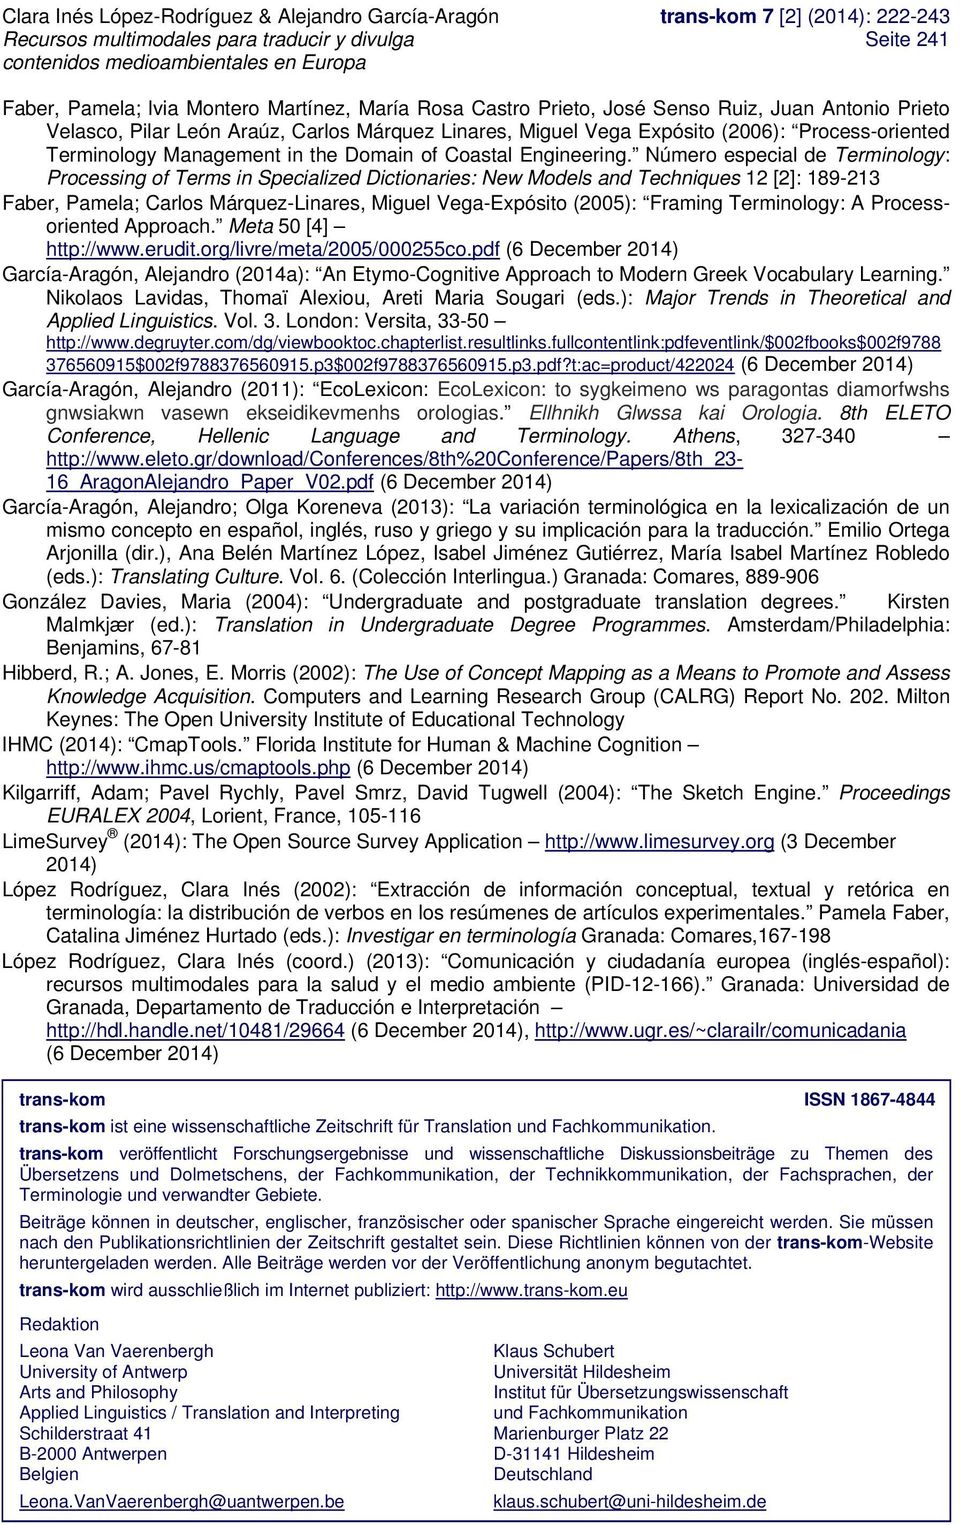 Número especial de Terminology: Processing of Terms in Specialized Dictionaries: New Models and Techniques 12 [2]: 189-213 Faber, Pamela; Carlos Márquez-Linares, Miguel Vega-Expósito (2005): Framing